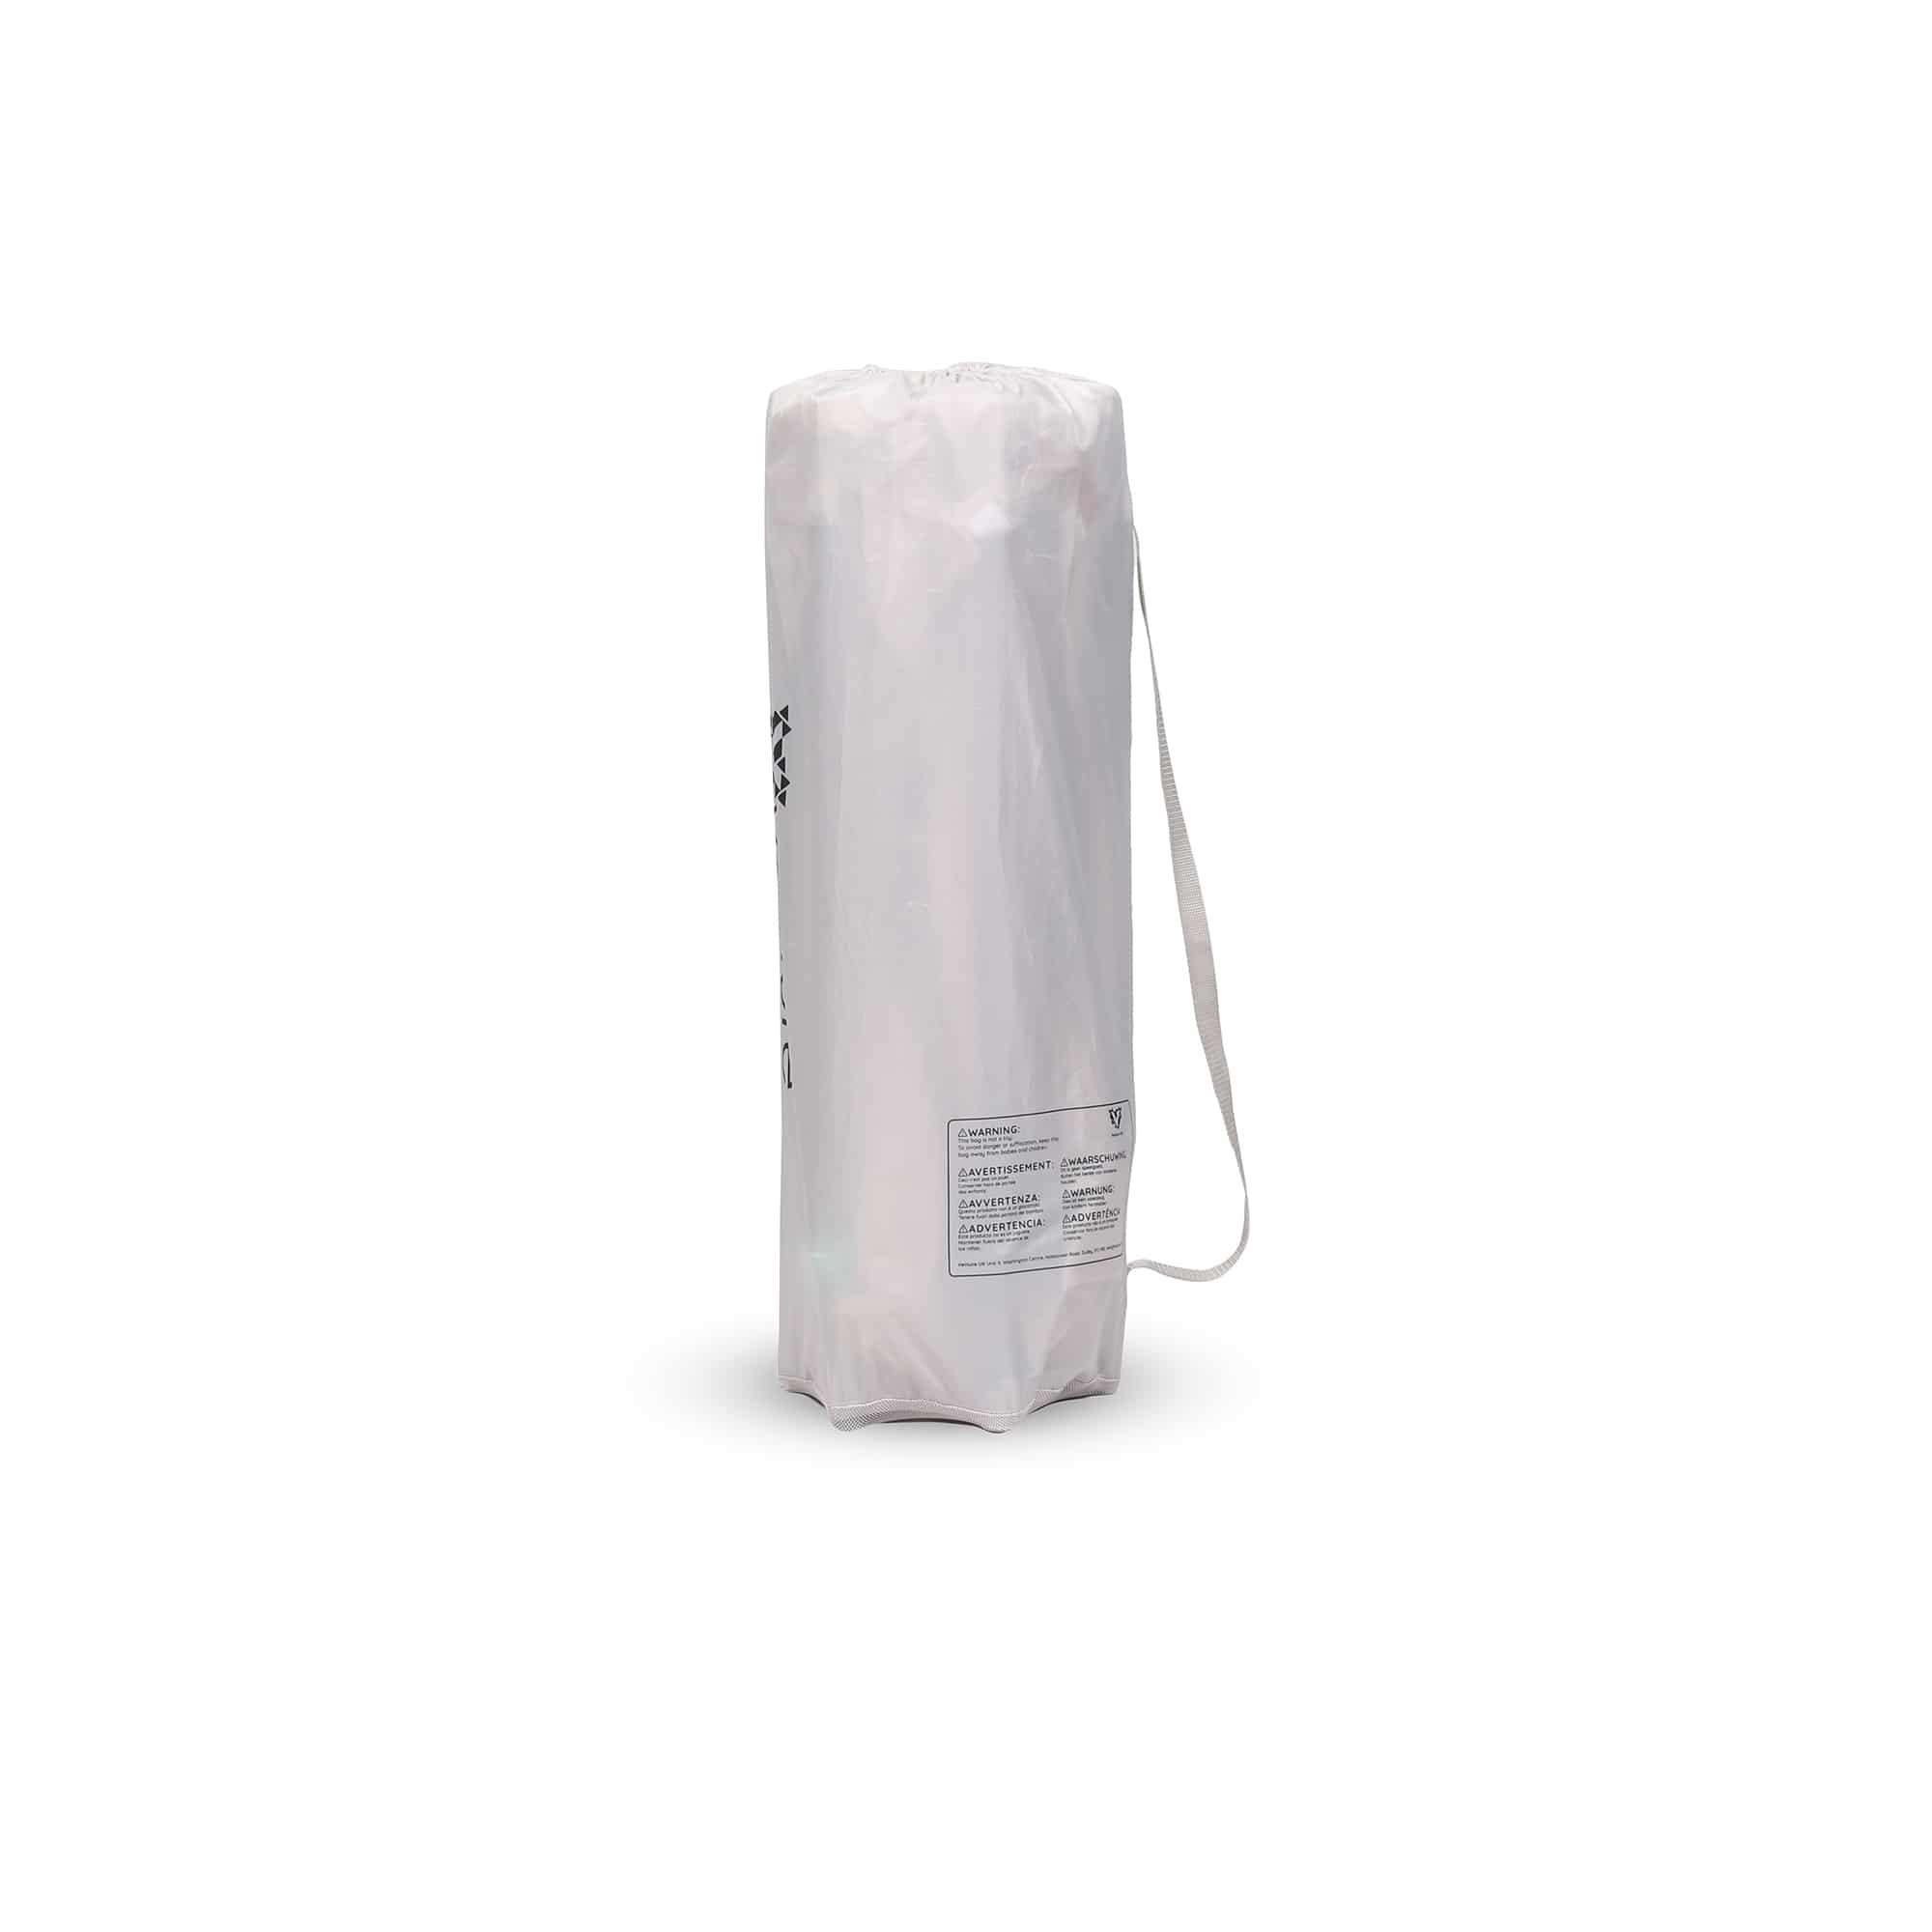 The bag features a handy carry strap making it great for use on the move.